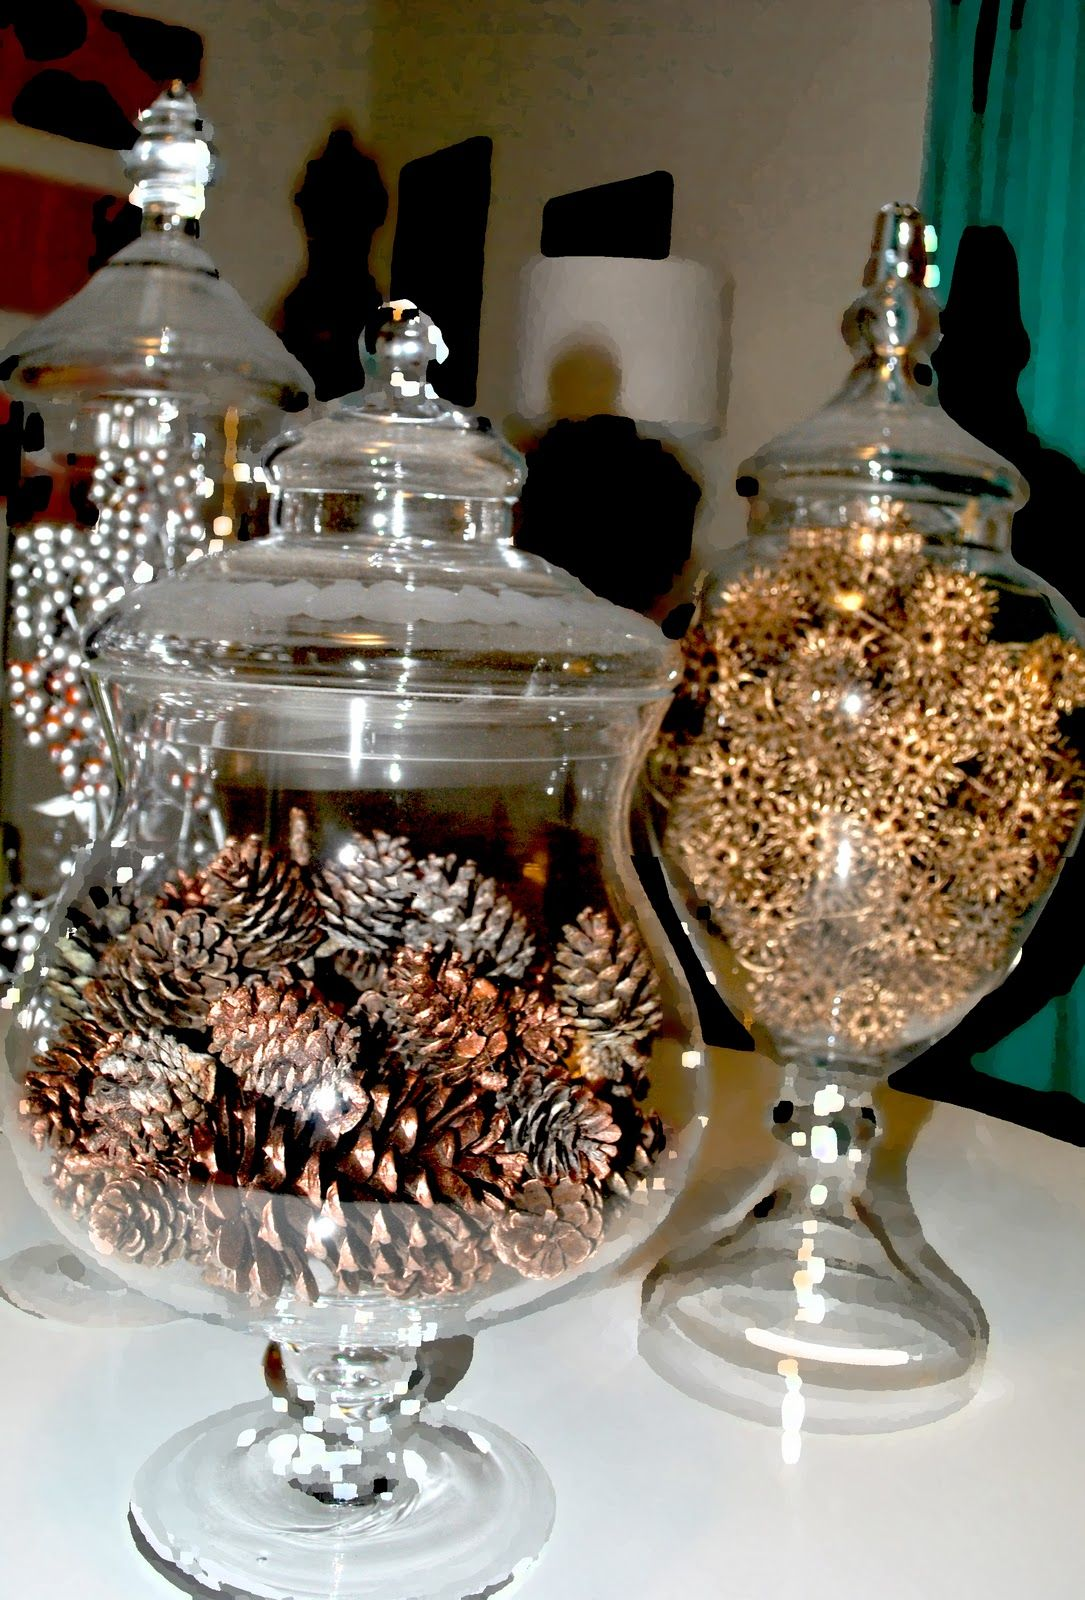 Sweetgum Balls Pinecones Are Painted Bronze The Sweet Gum Balls Gold And In My Third Natural Christmas Decor Sweet Gum Tree Crafts Sweet Gum